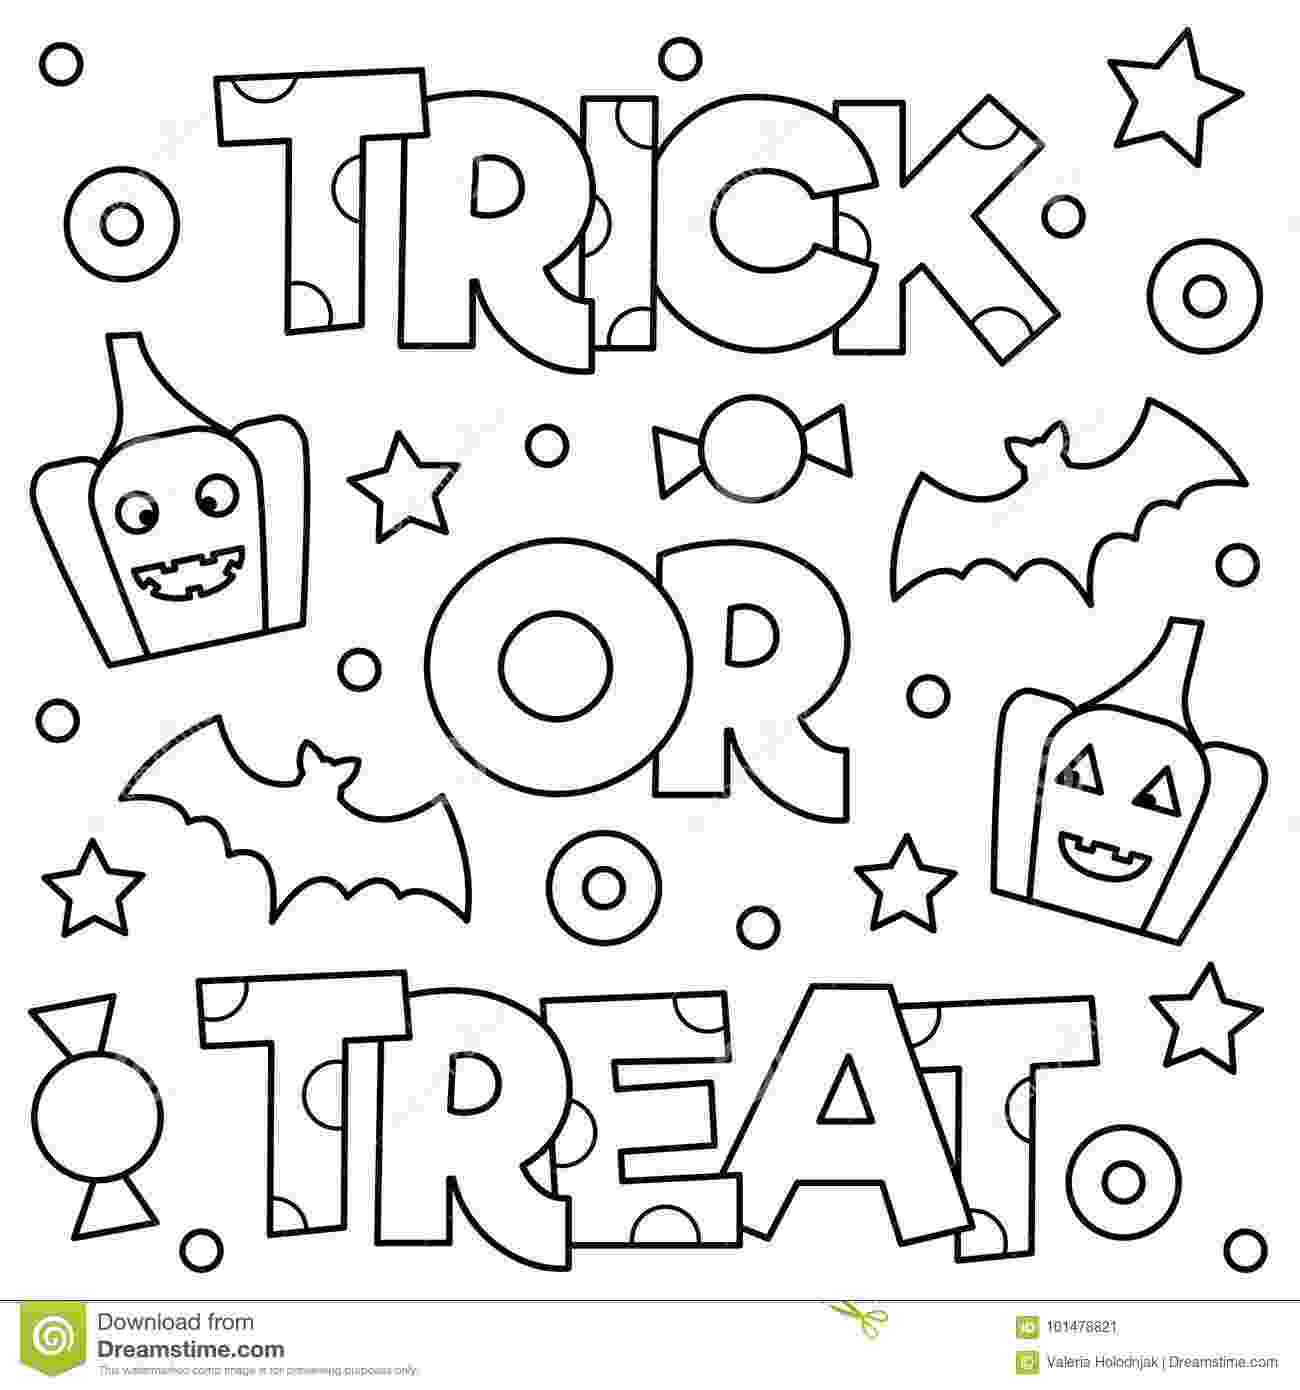 trick or treat coloring pages free printable halloween coloring pages not quite treat or coloring trick pages